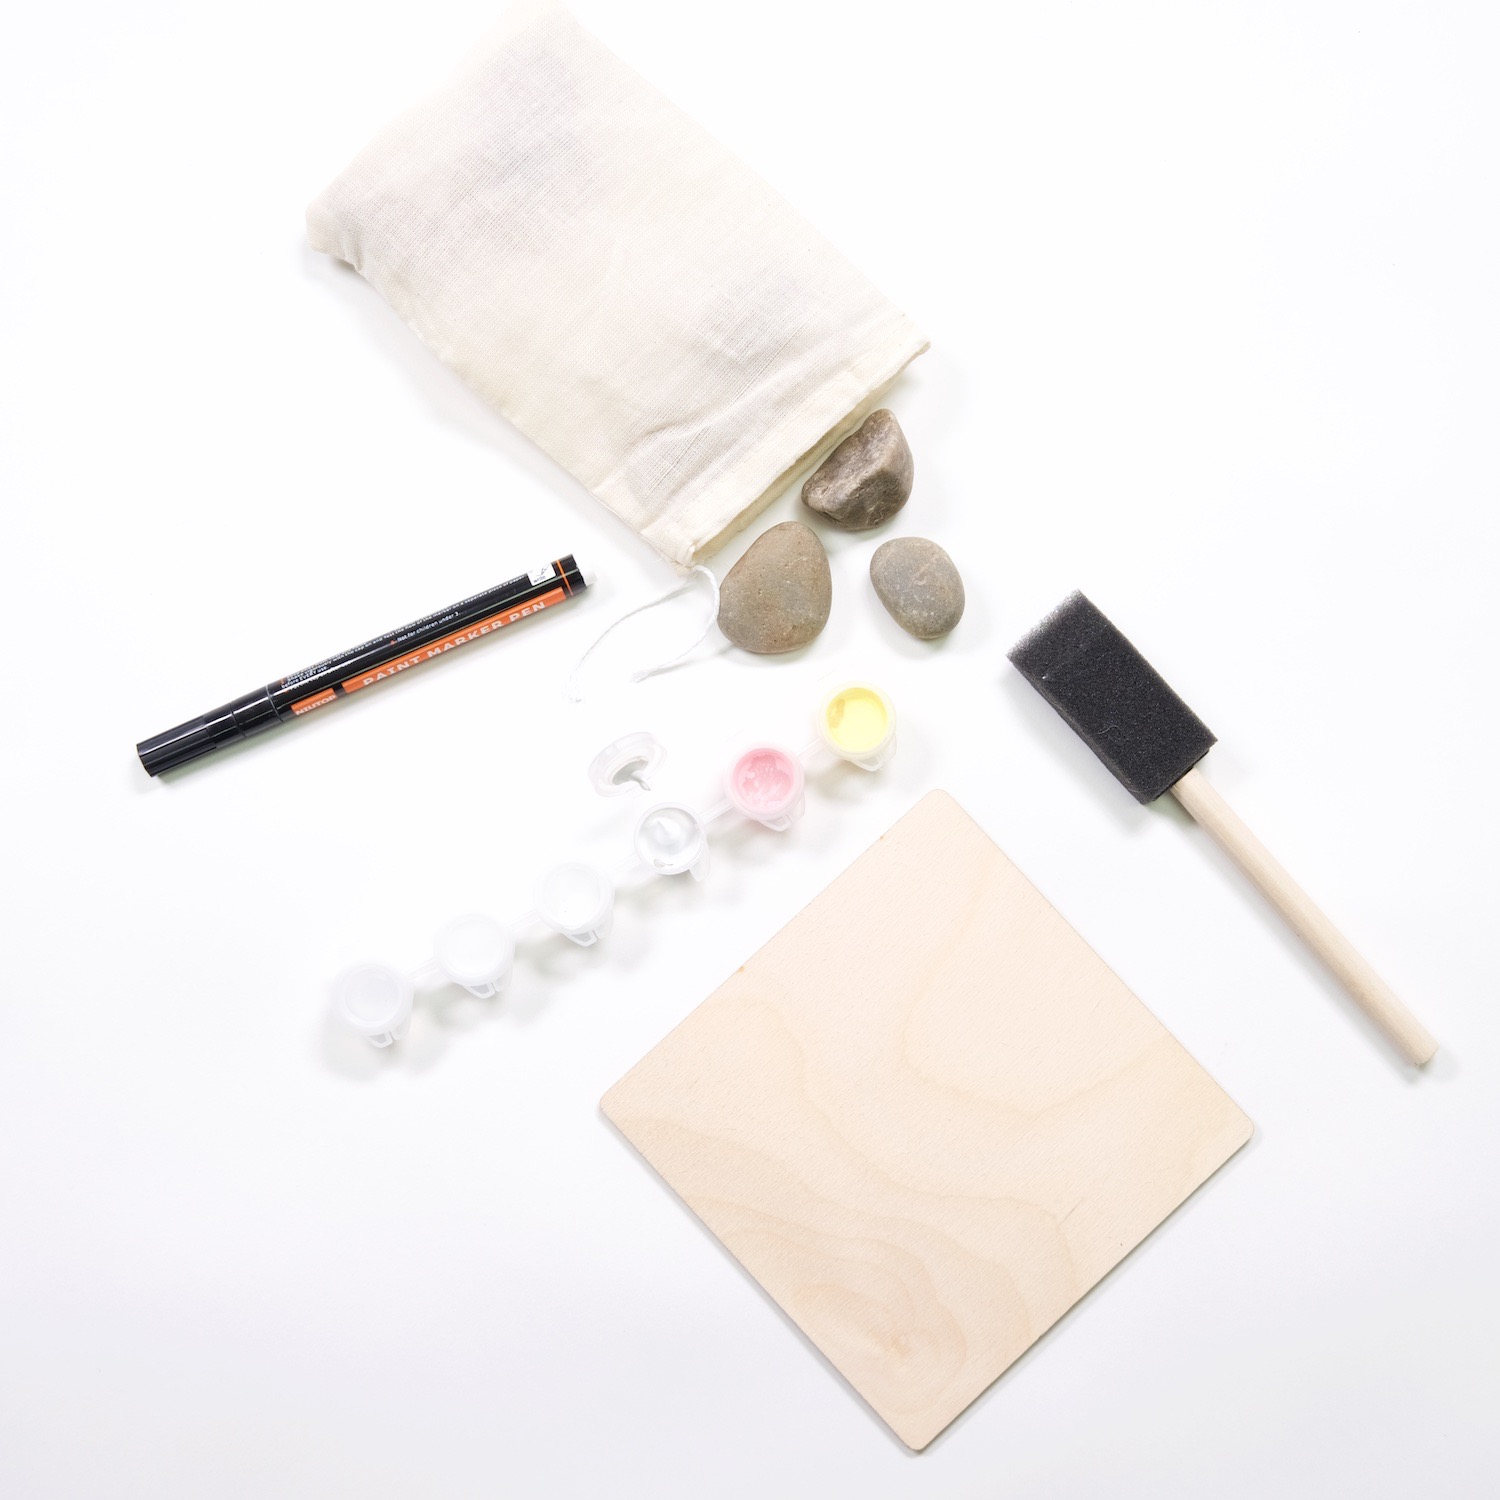 supplies to make a painted rock tic tac toe set